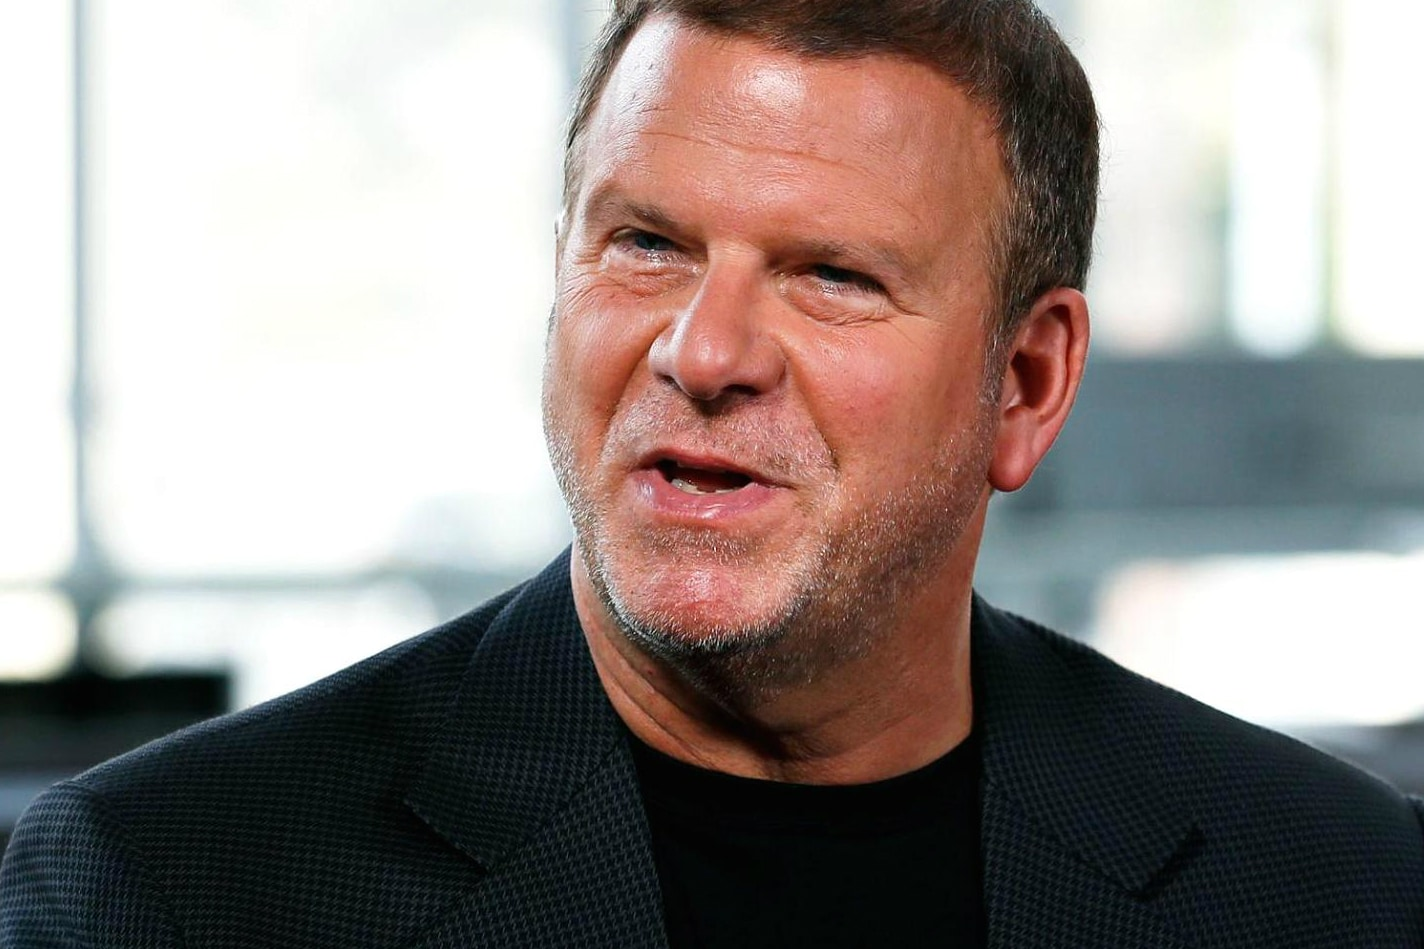 Houston Rockets Have New Owner: Businessman Tilman Fertitta